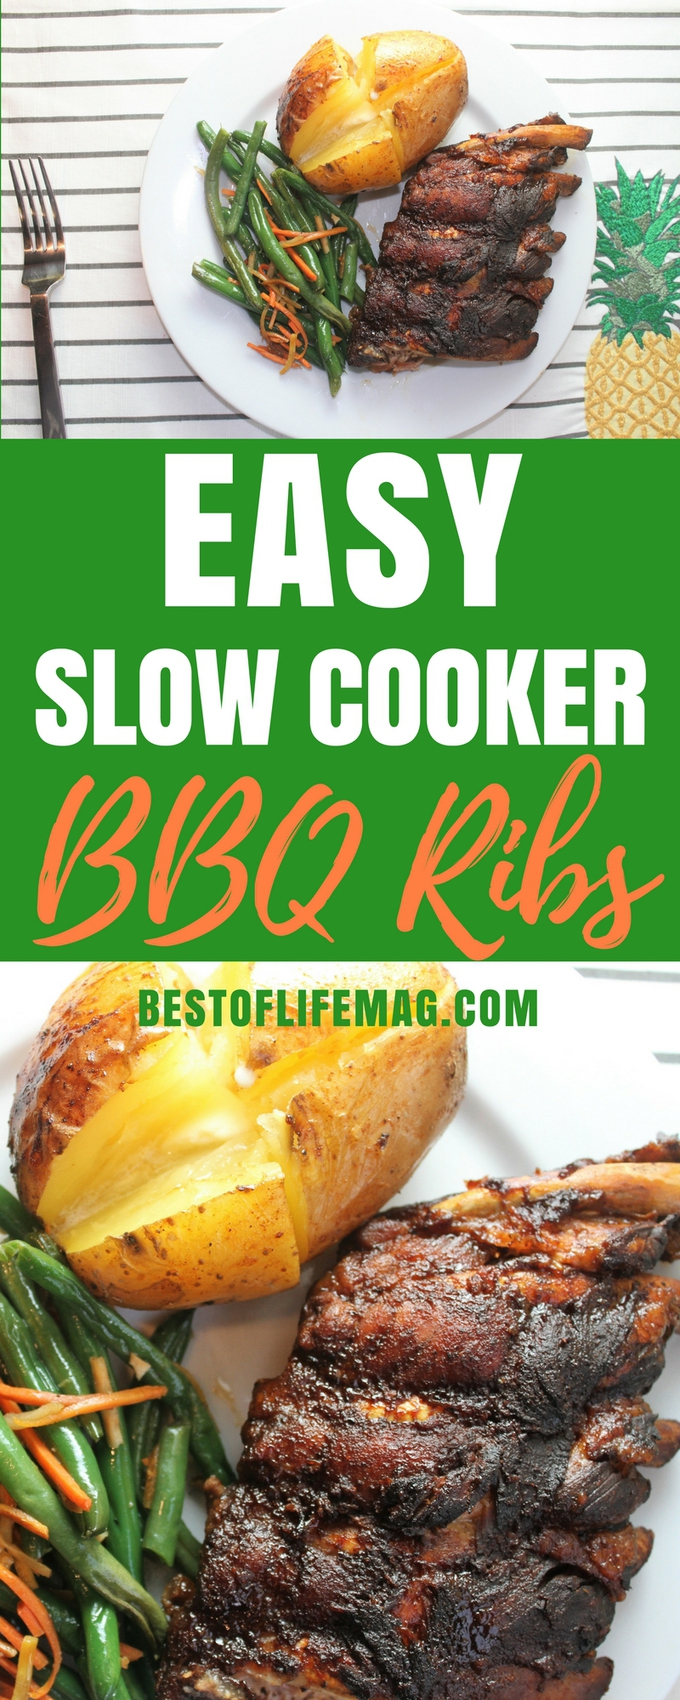 This super easy Crockpot BBQ ribs recipe makes such flavorful and tender ribs, you may never fire up the grill again! Easy BBQ Ribs Recipe | Best BBQ Ribs Recipe | Crockpot BBQ Ribs Recipe | Slow Cooker BBQ Ribs Recipe | Best Crockpot Recipes | Best Slow Cooker Recipes | Easy Crockpot Recipes | Crockpot Dinner Recipes